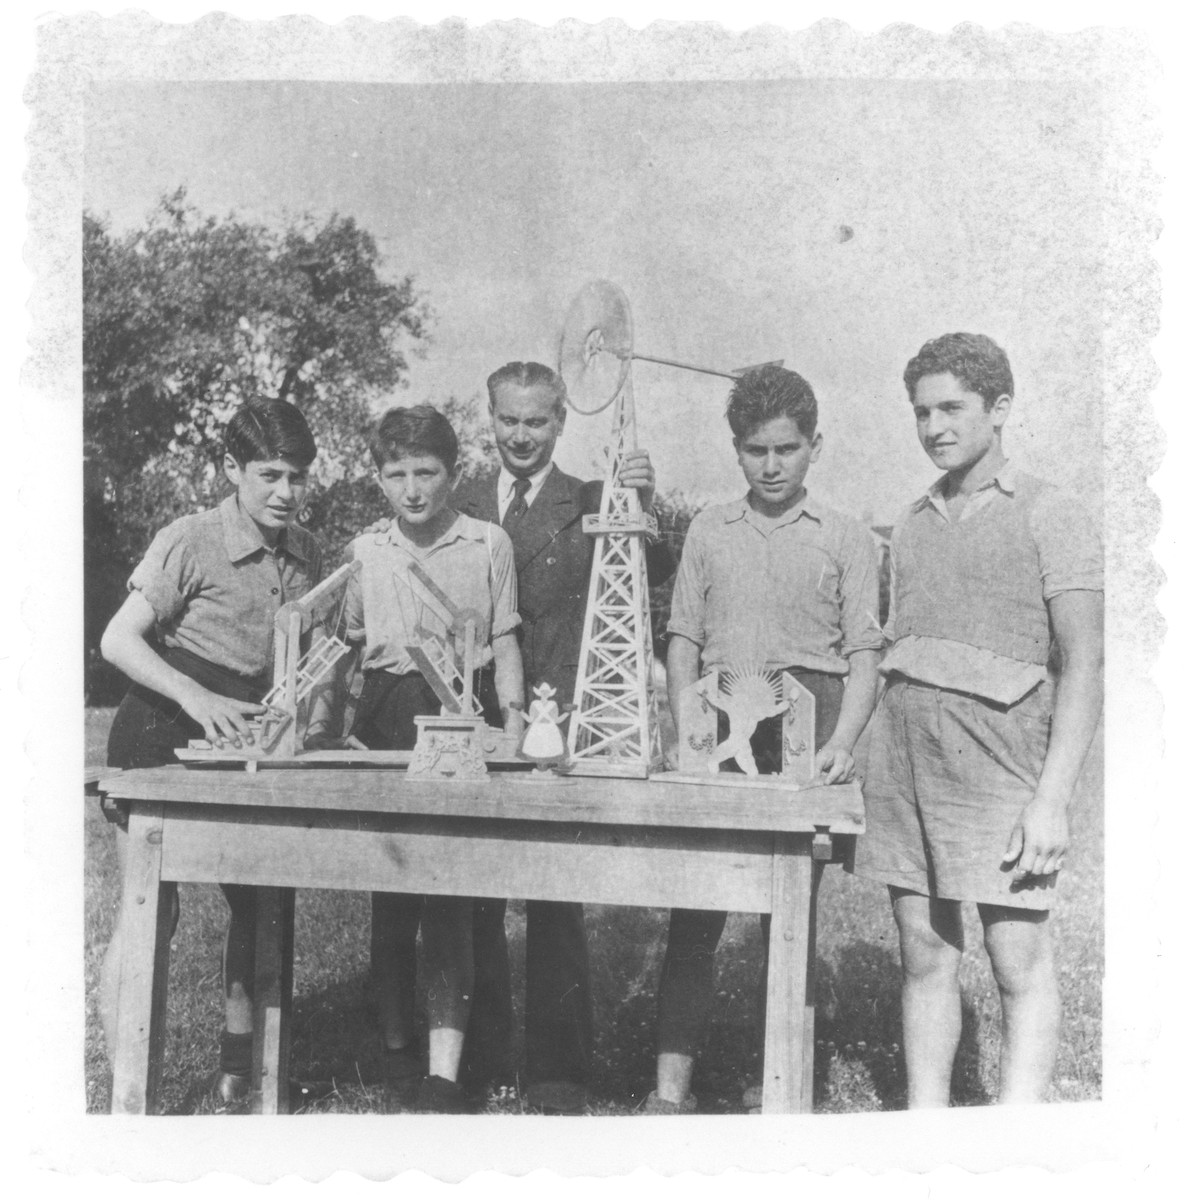 Ivar Segalowitz and three other boys display models that they made in a woodworking class in the Ecouis children's home.  Among those pictured are Hans Oster (left), Ivar Segalowitz (second from the left), and Janusz Podlaski (second from the right).